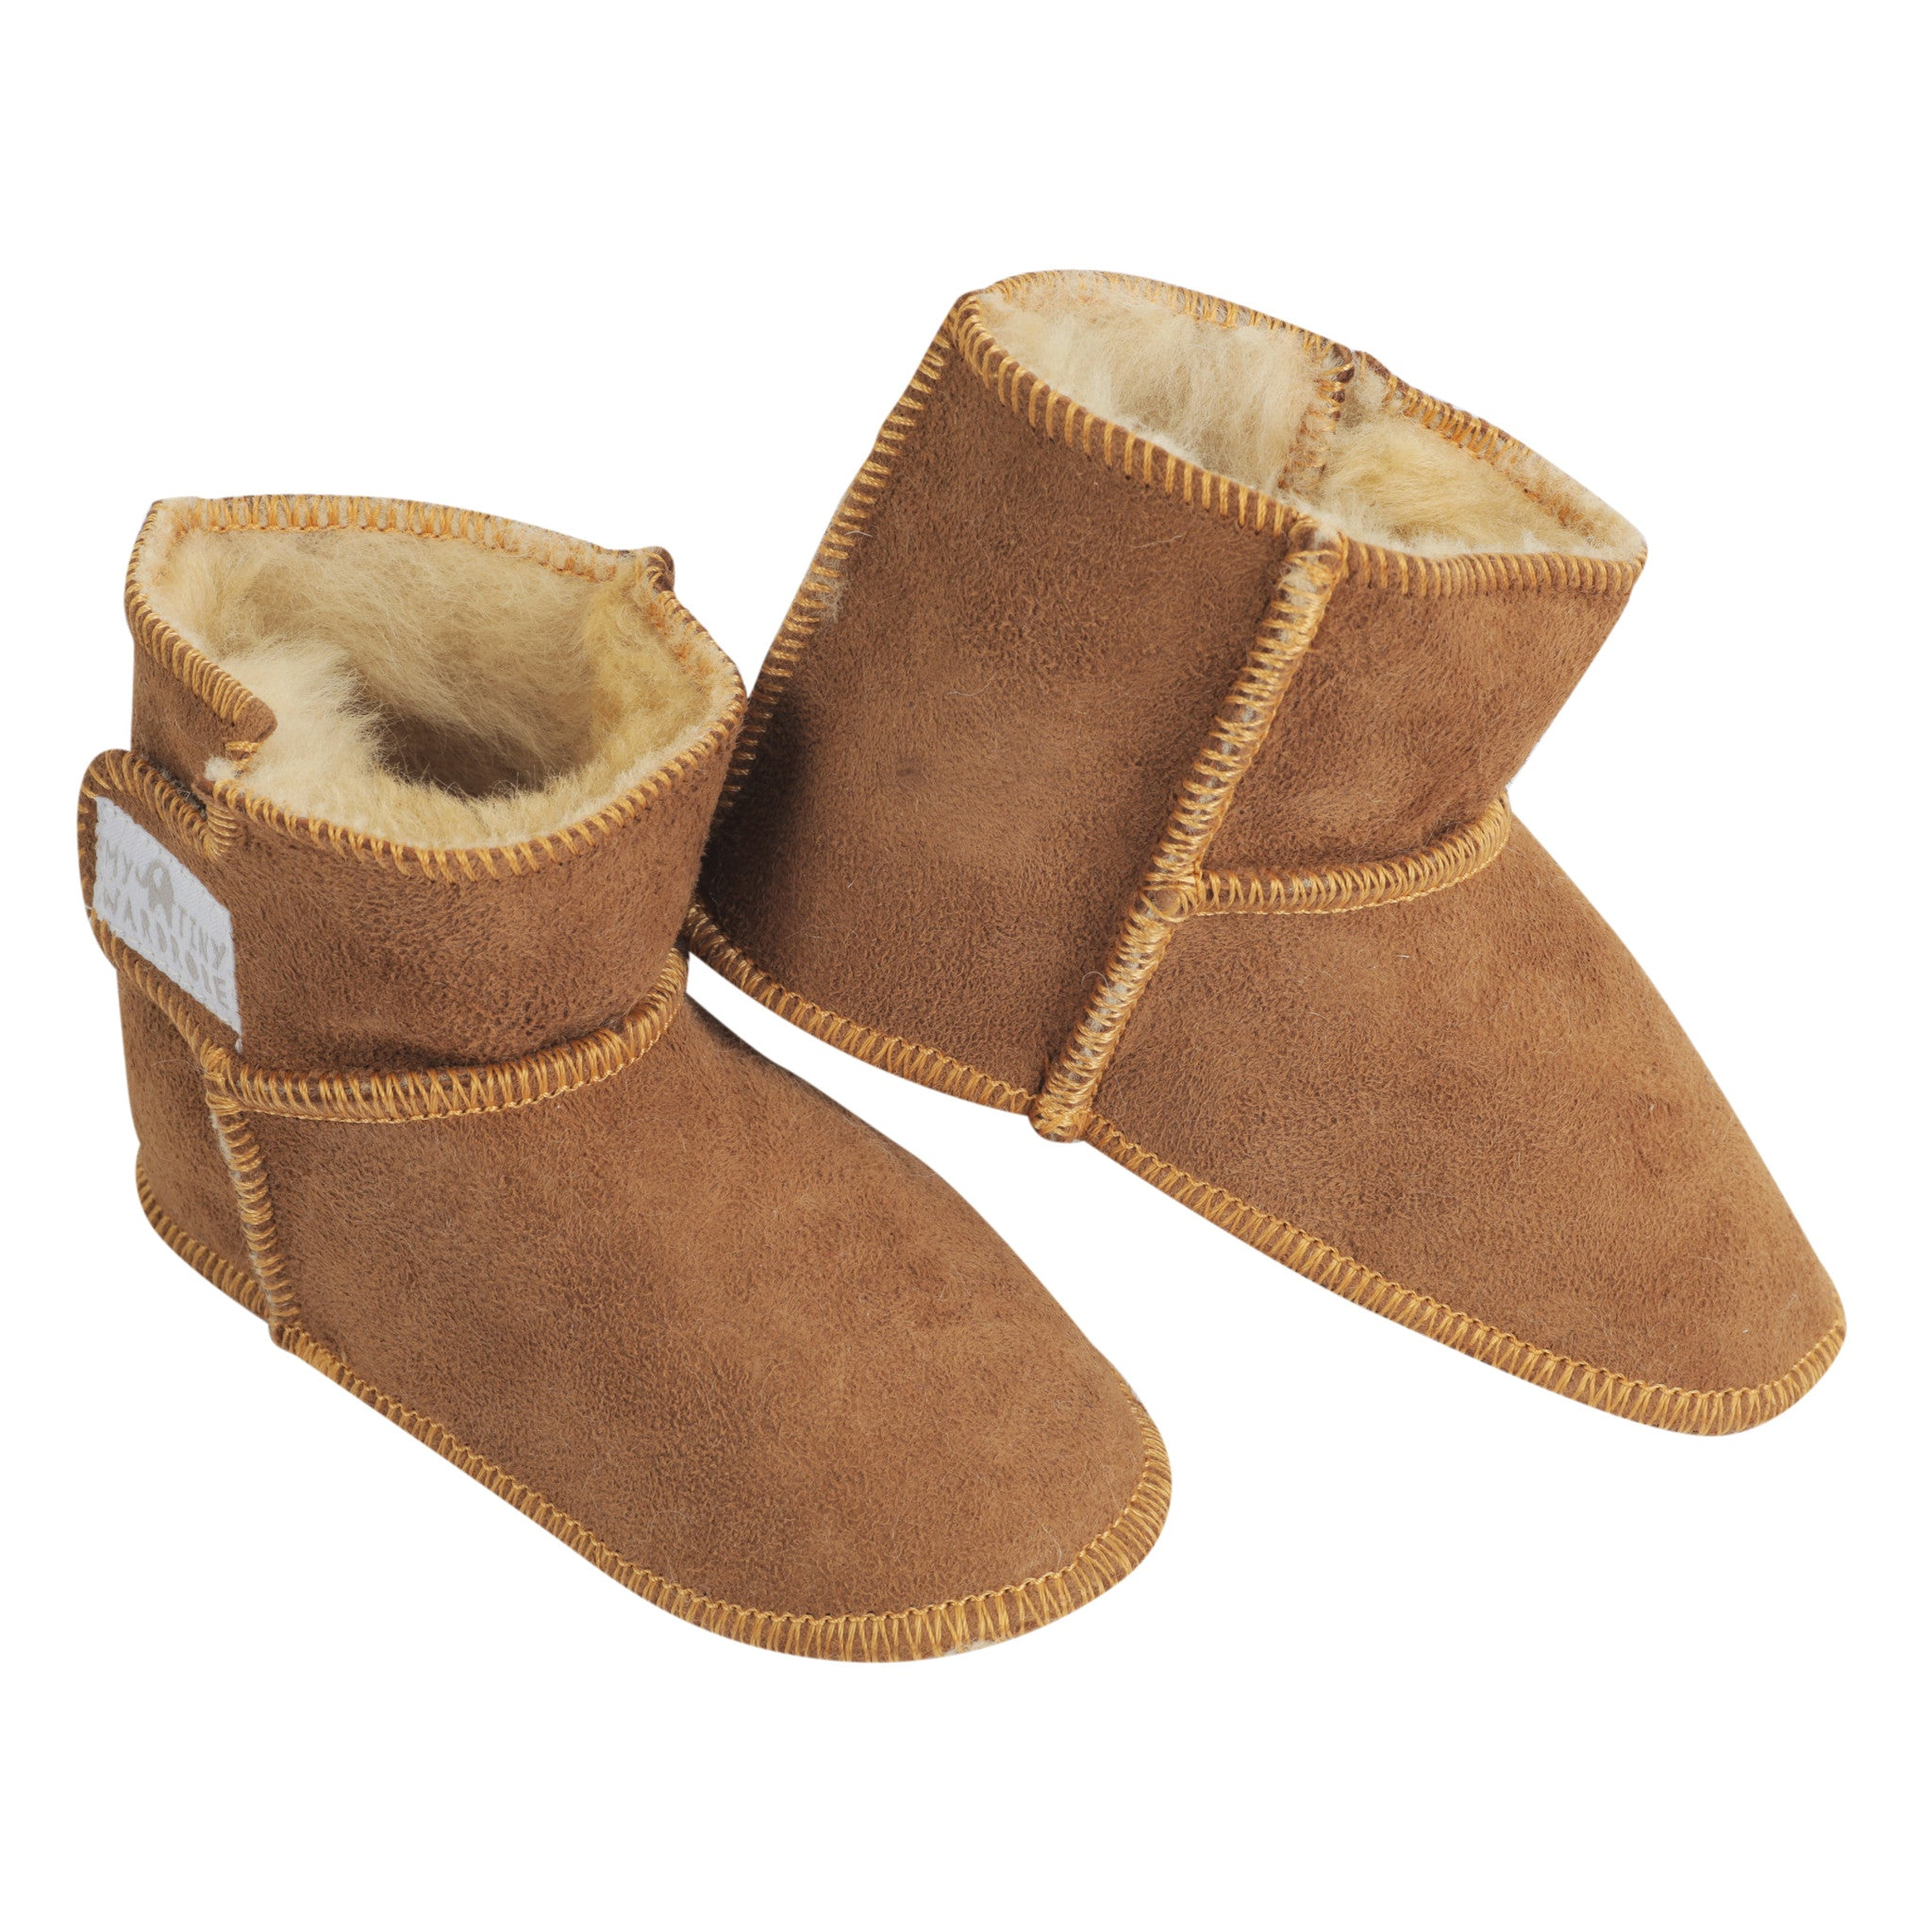 Sheepskin Ugg Boots – Brown